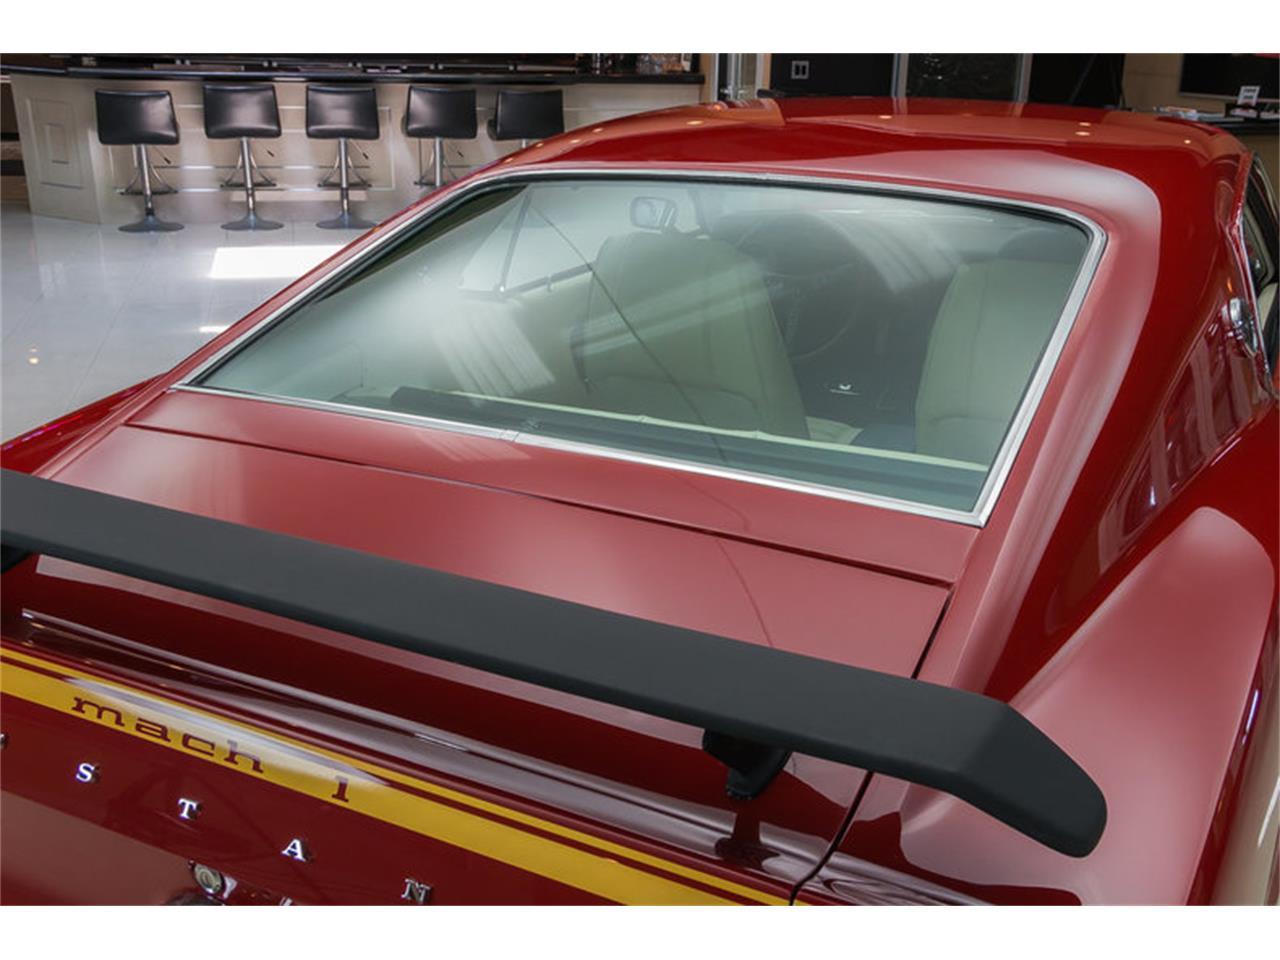 Large Picture of '69 Mustang Mach 1 S Code located in Michigan - $59,900.00 - IS3G